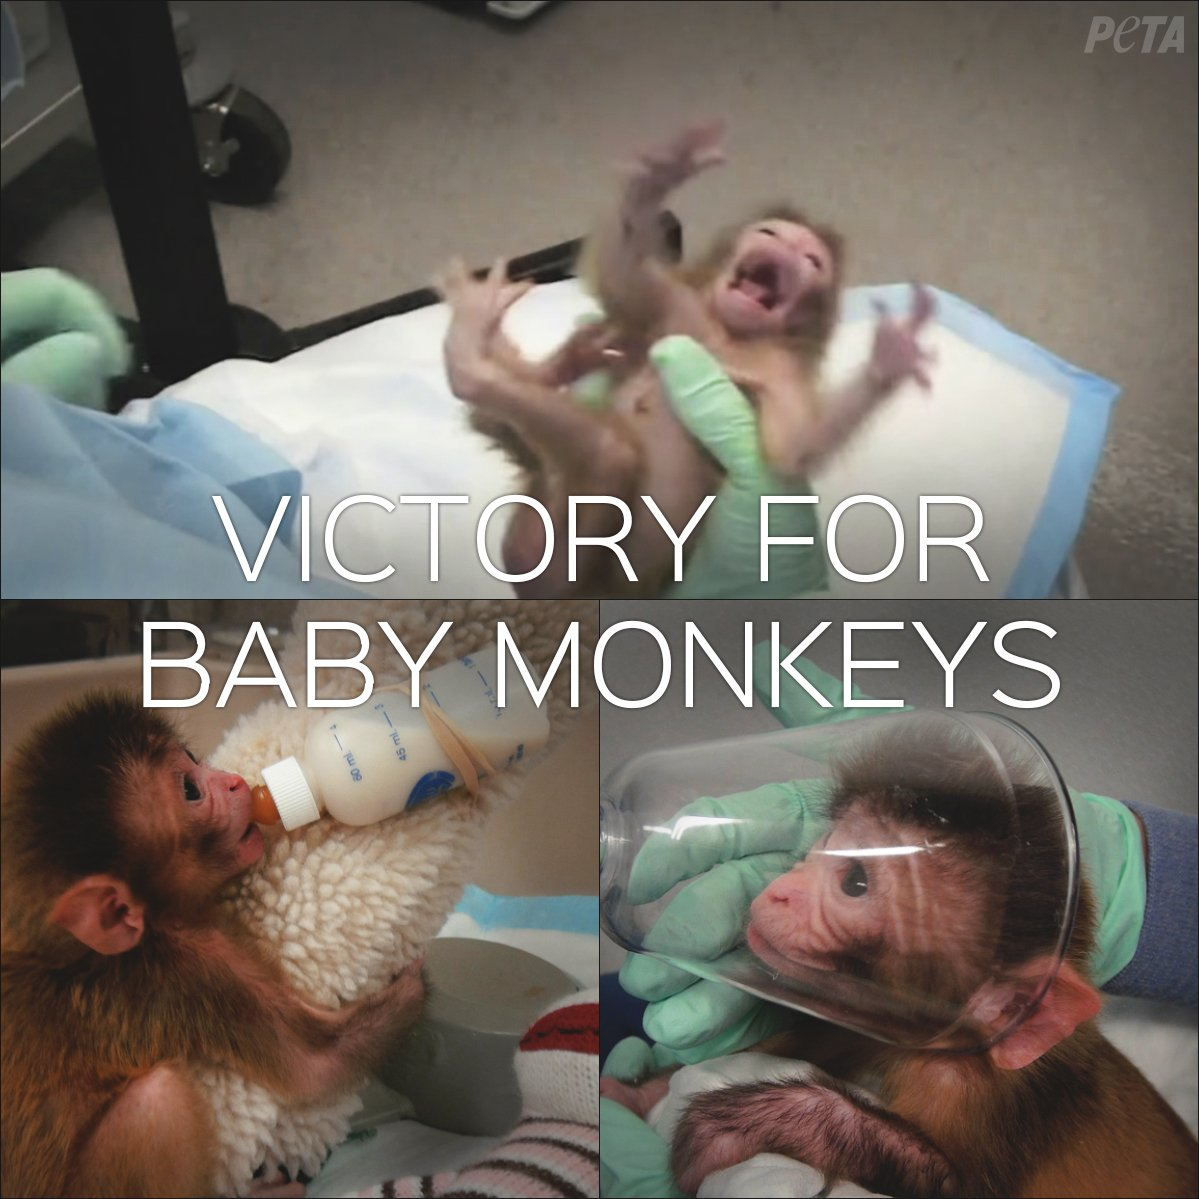 RT @peta: @pamfoundation VICTORY! @NIH announced they will stop experimenting on baby monkeys! https://t.co/WWUgRHTd2F https://t.co/CexHHSy…